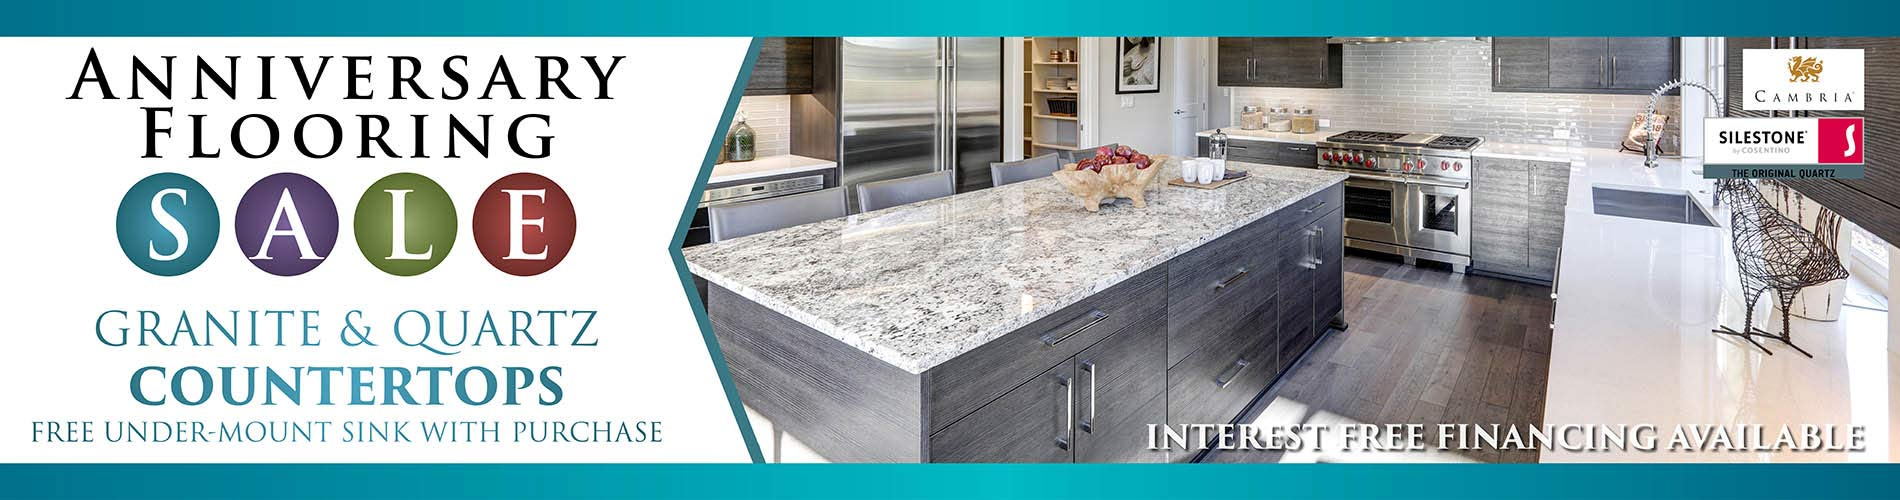 Free Under-mount Sink with your granite or quartz countertop purchase during our Sale Event at Erskine Interiors!